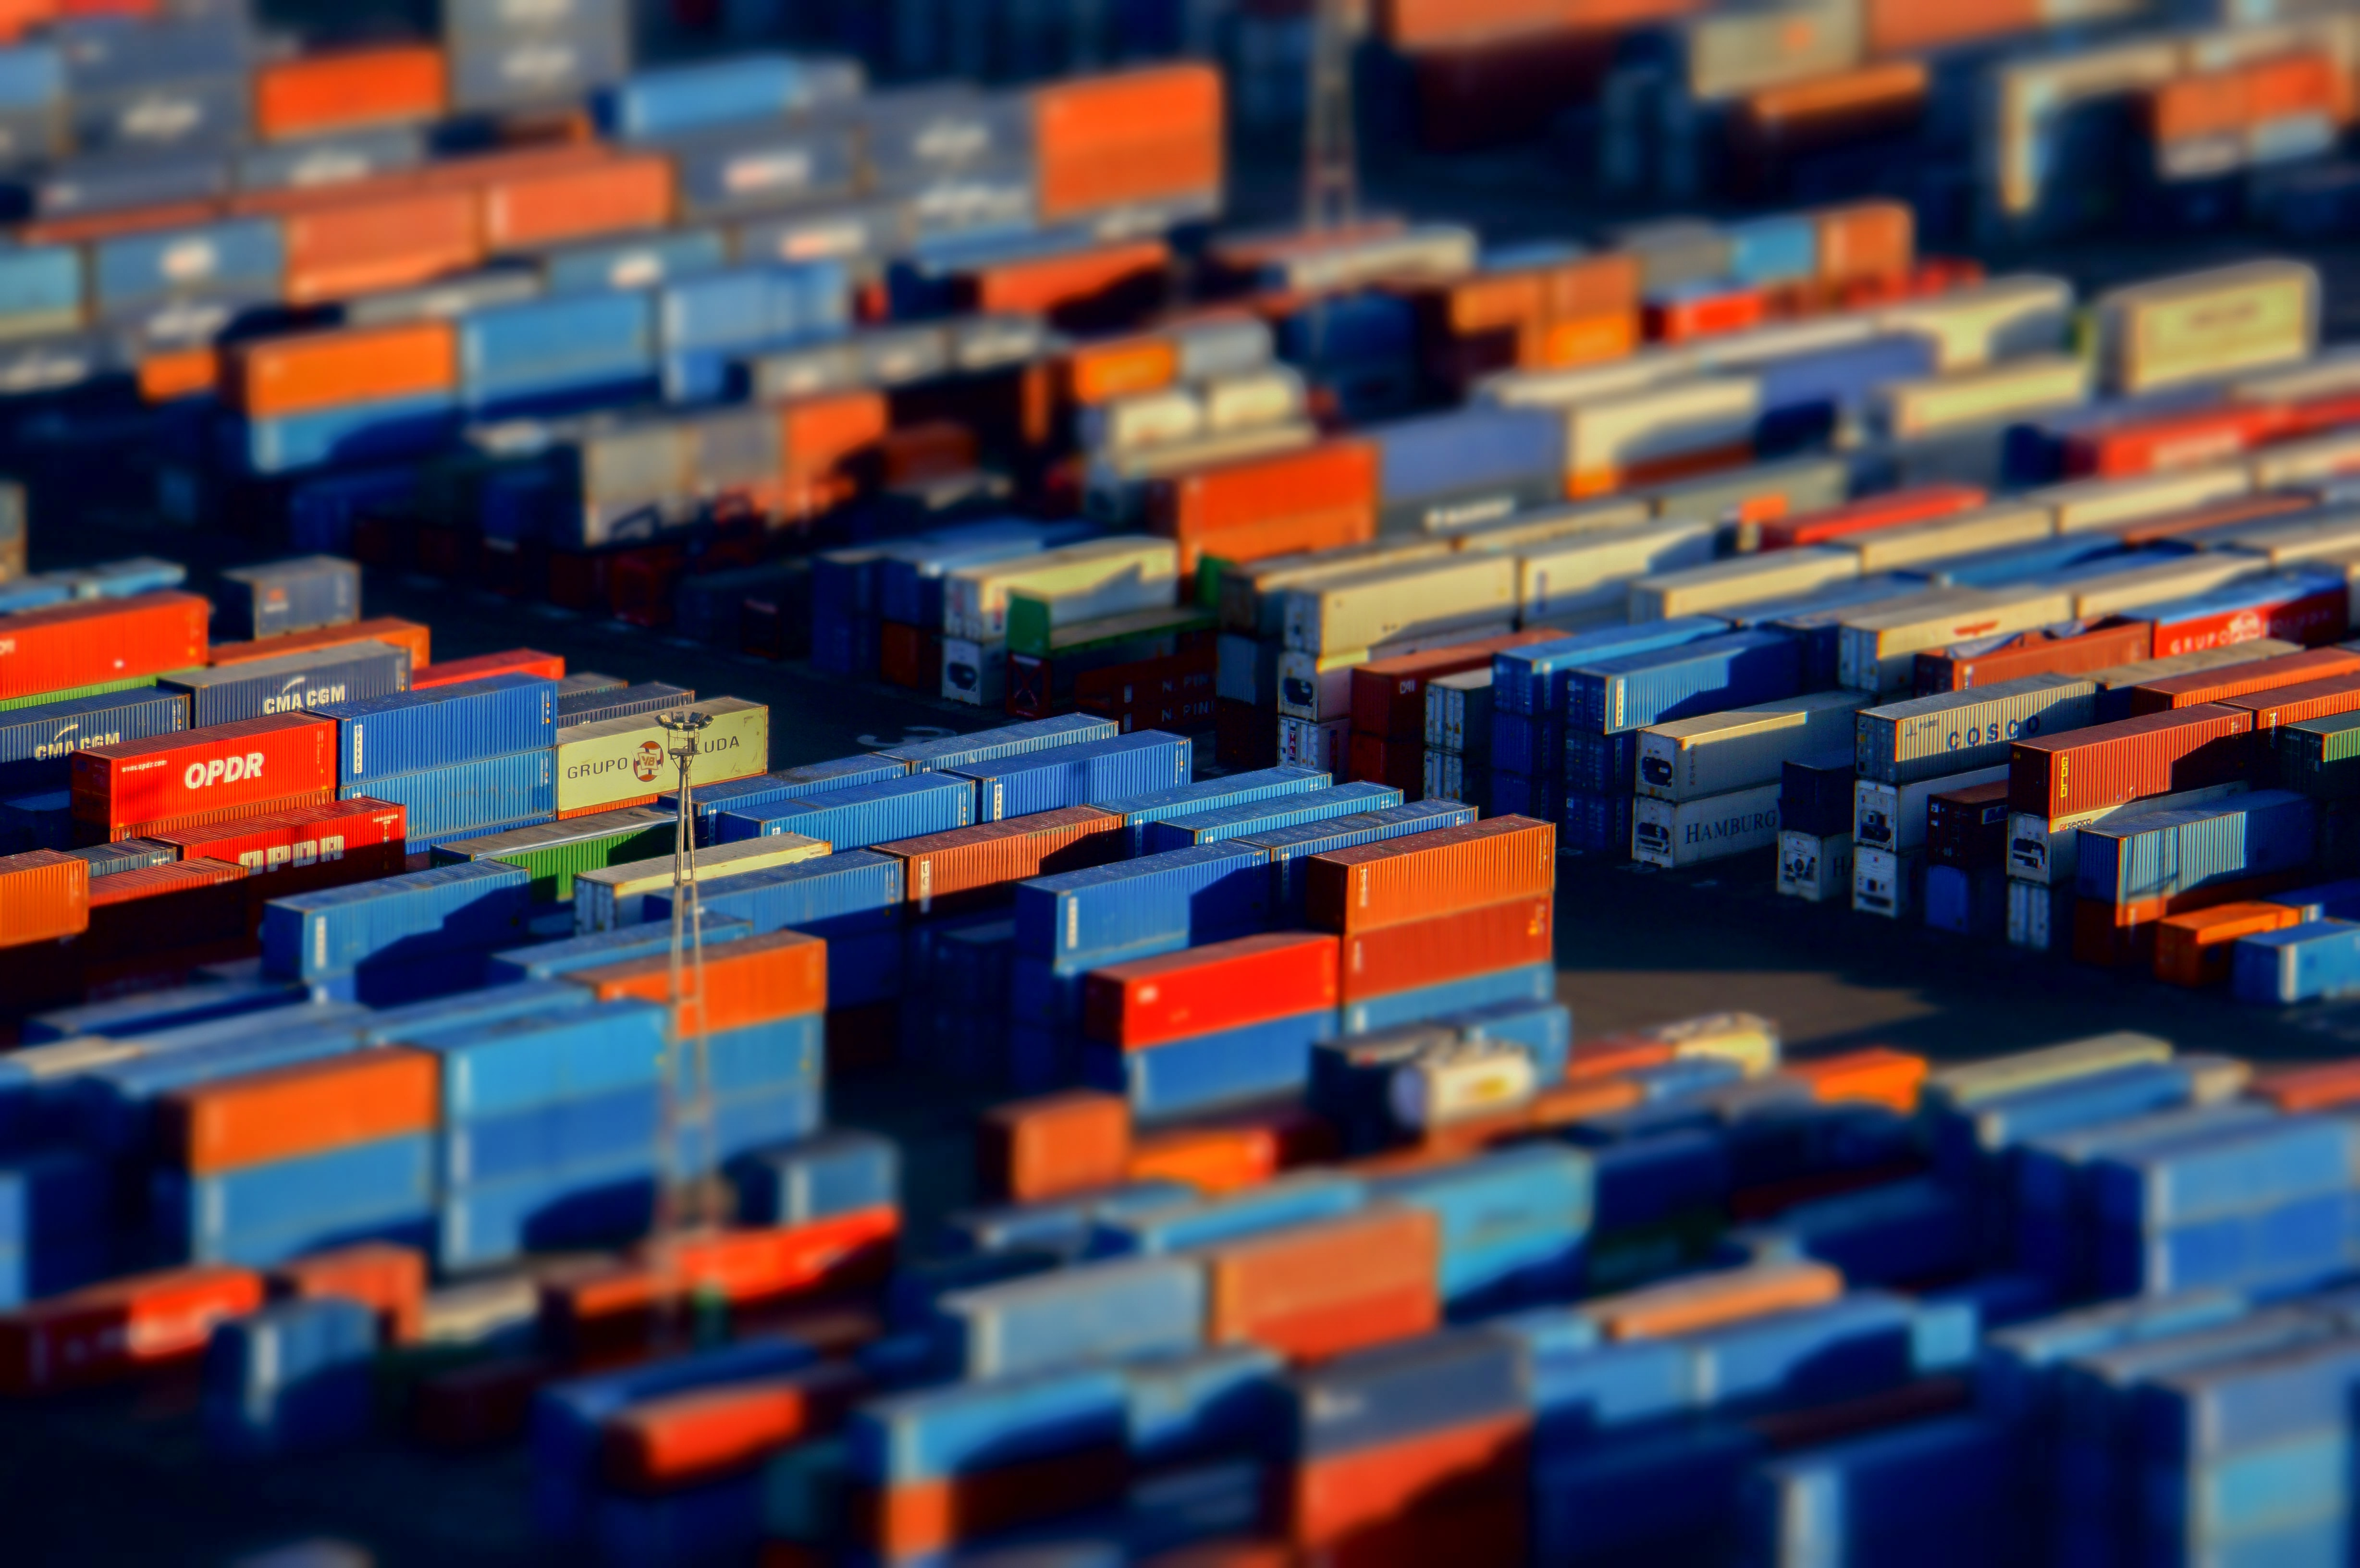 Clusters of shipping containers arranged in rows as seen in Barcelona.